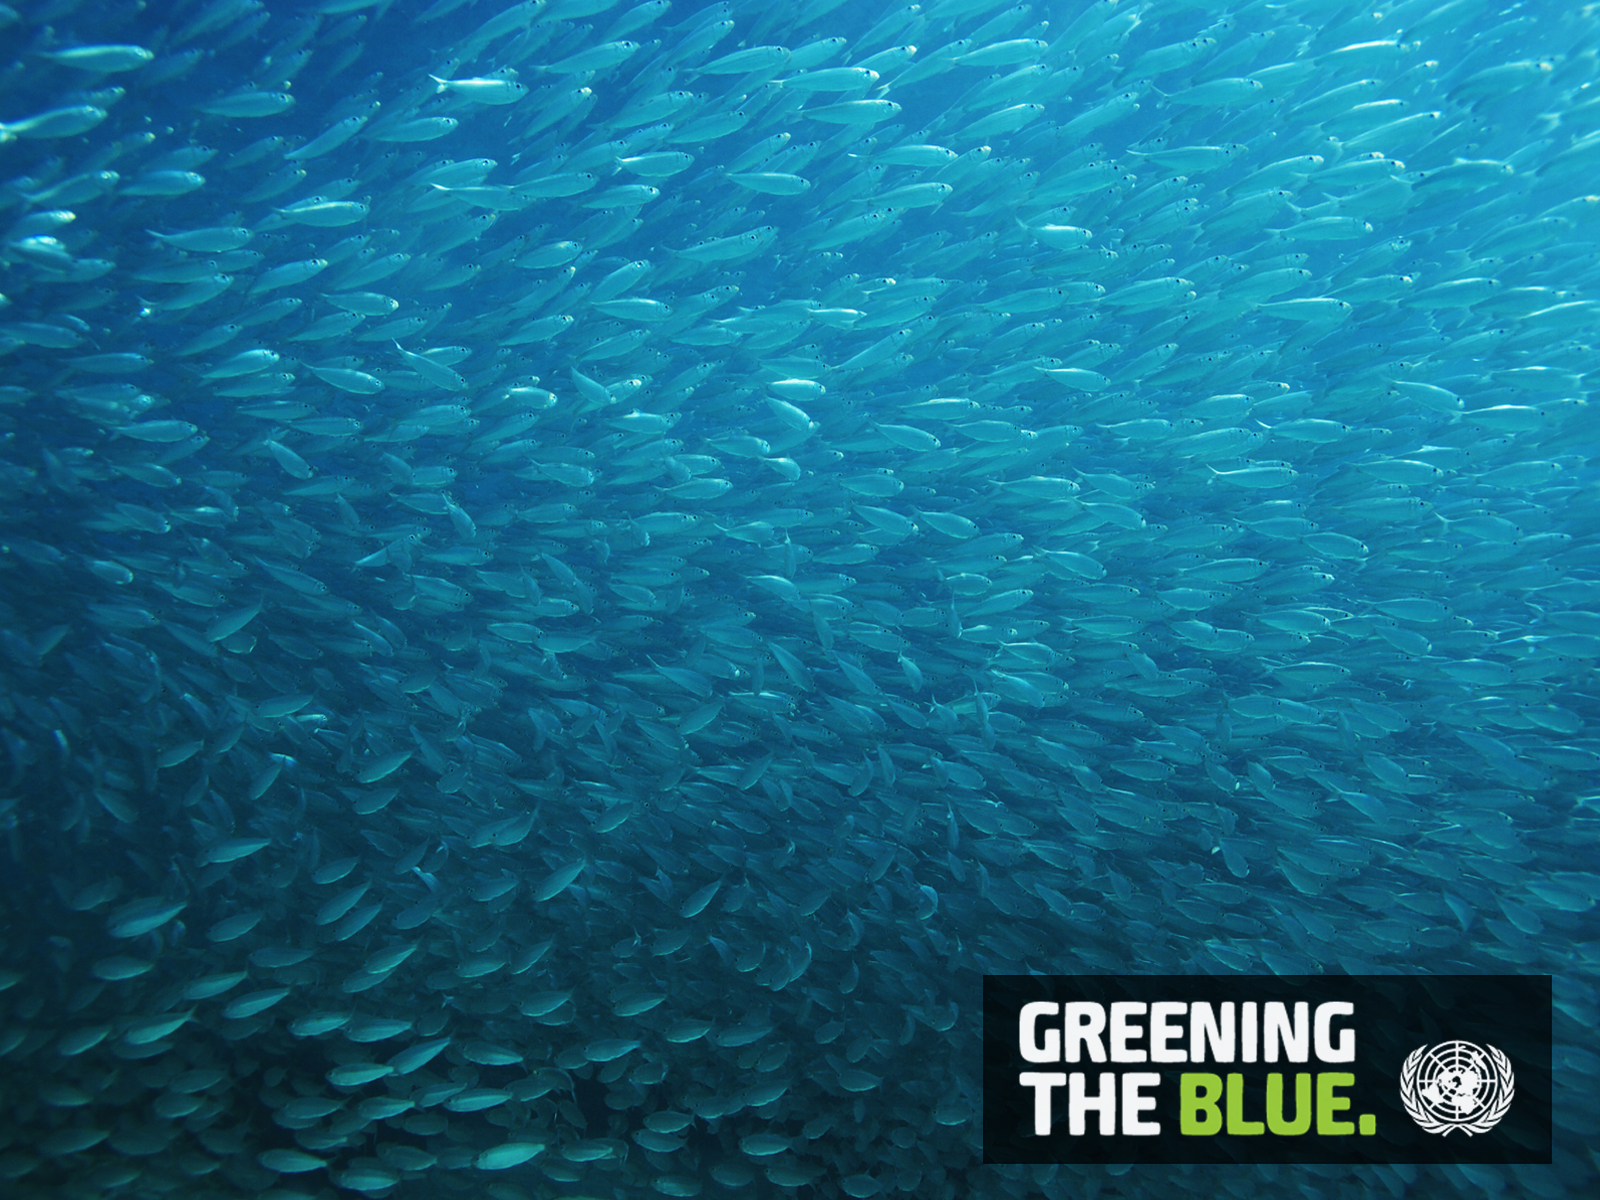 Greening the Blue Computer Wallpapers 1600-1200 - Fish